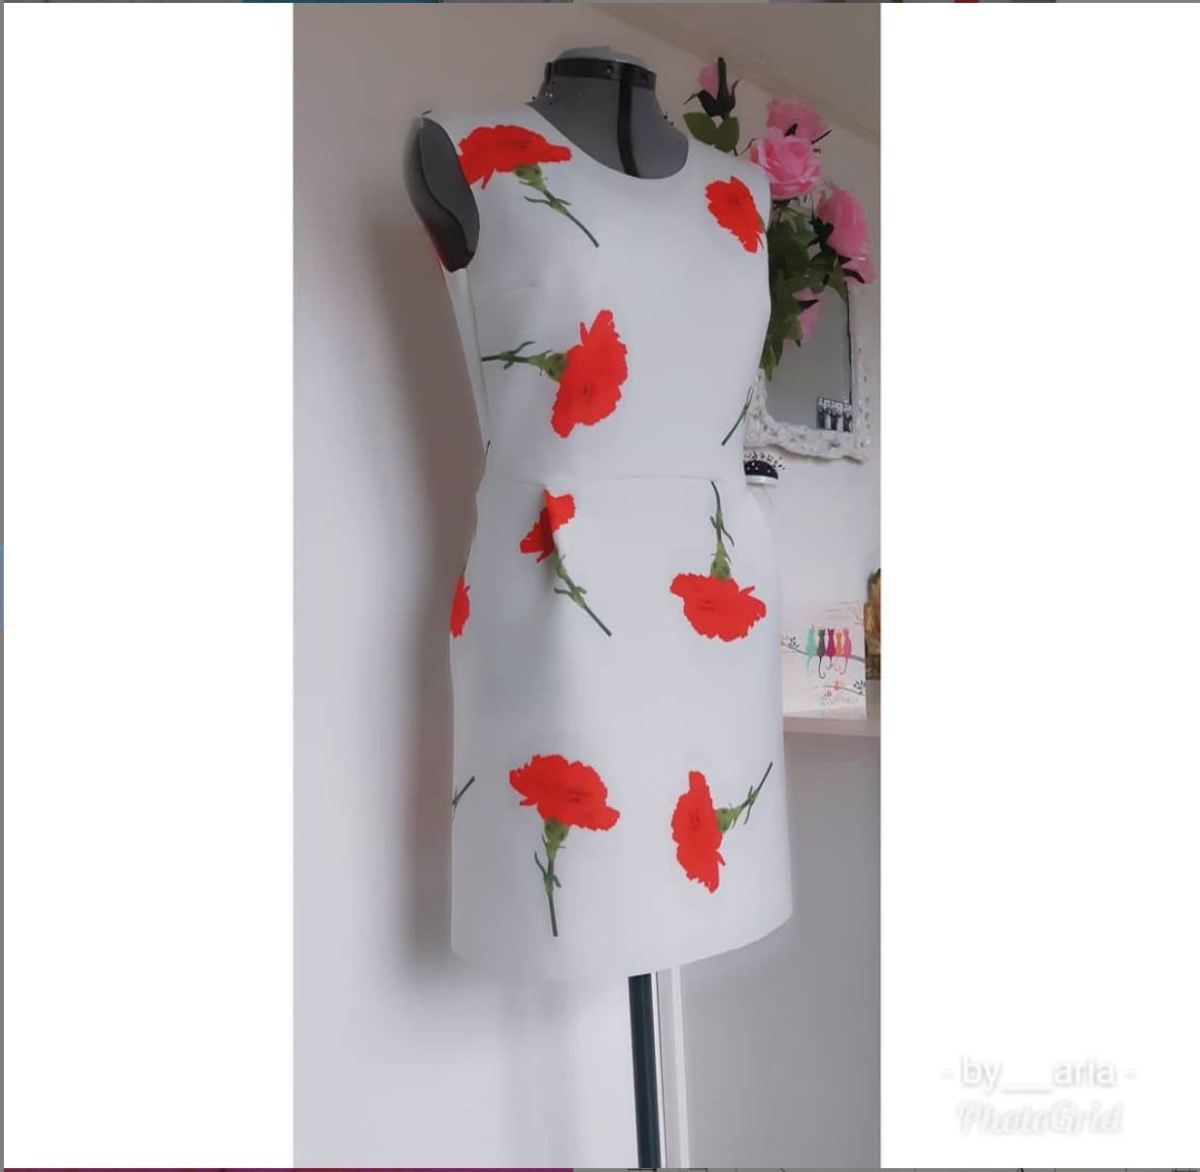 Grey dress with large red flowers on it